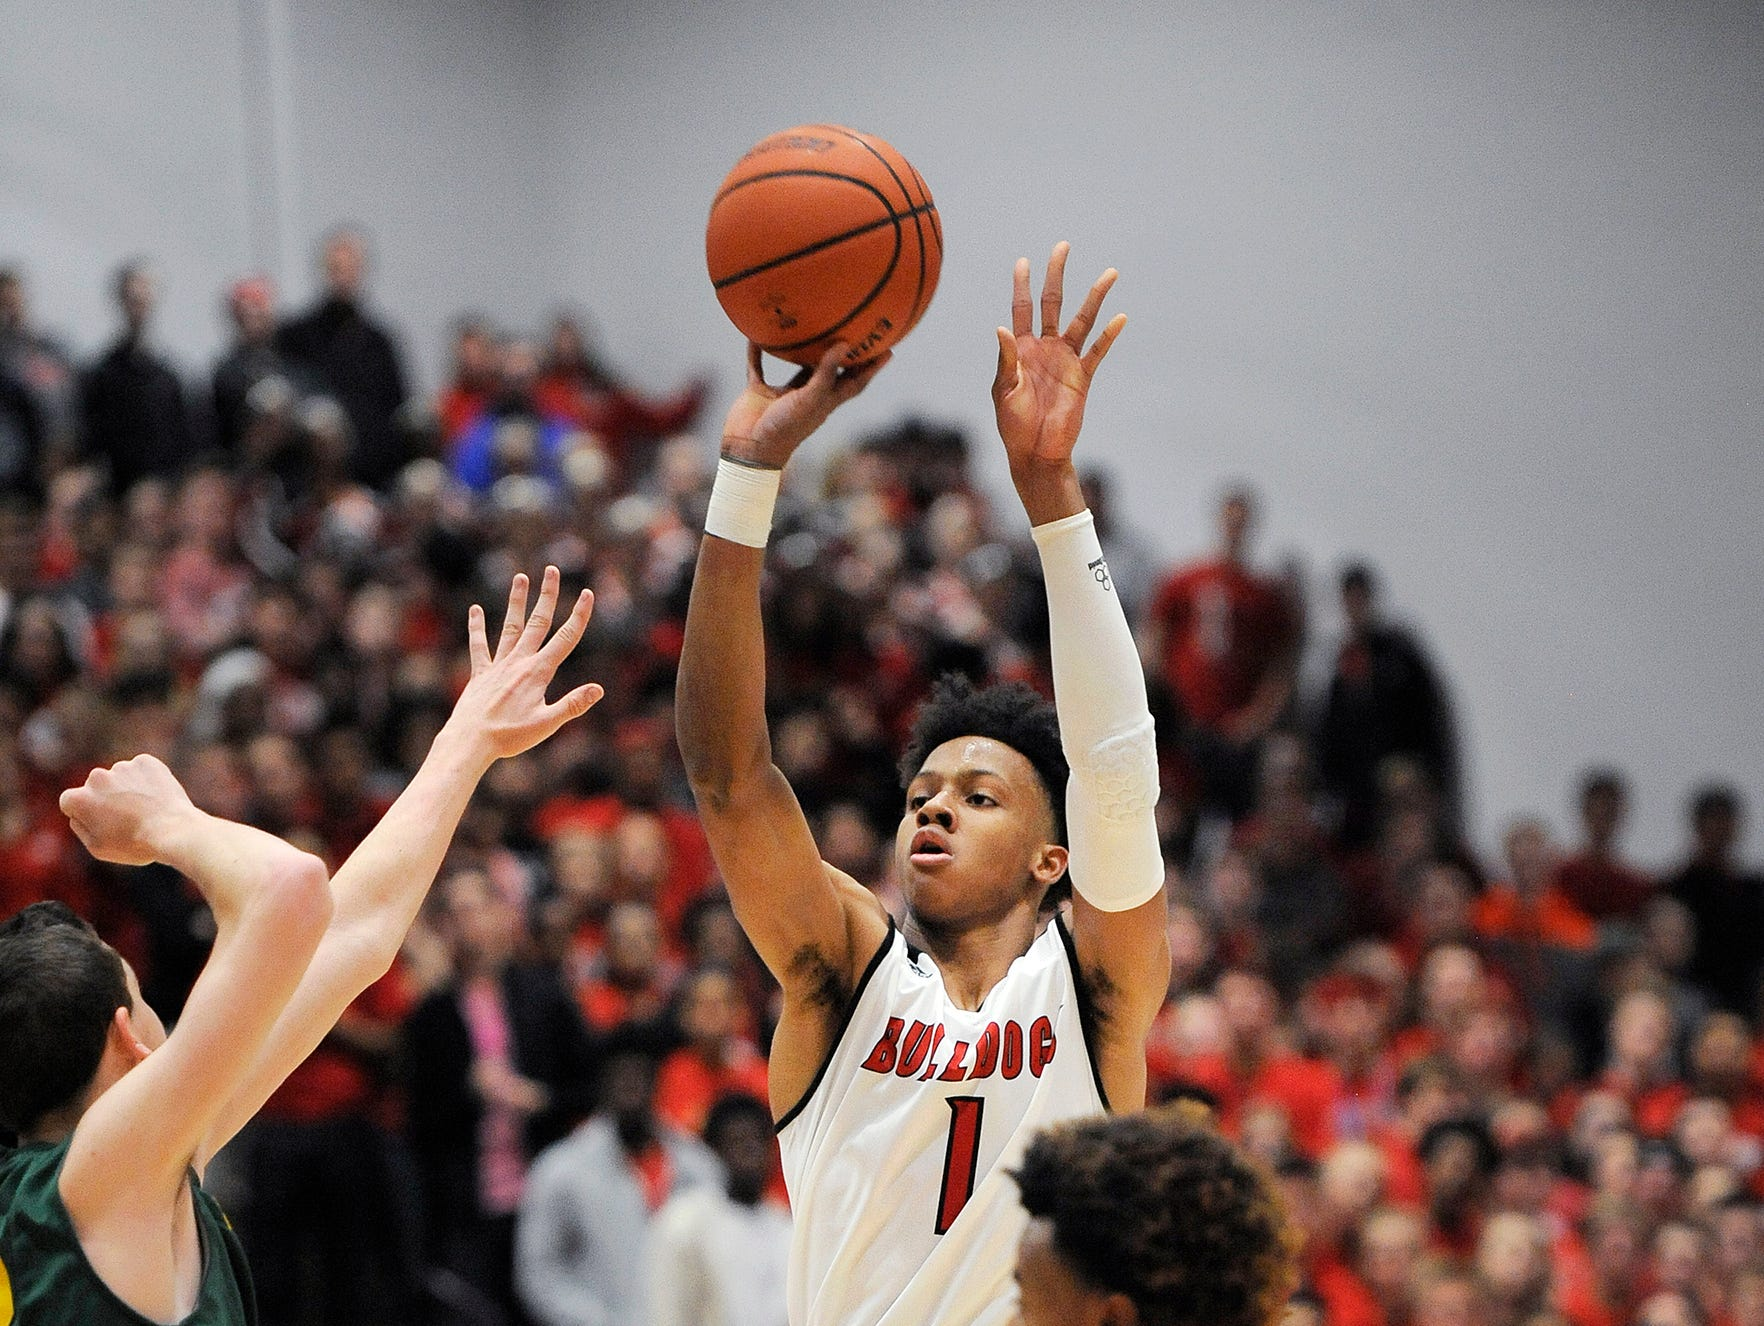 New Albany's Romeo Langford (1) shoots a three pointer against Floyd Central on Friday at New Albany High School. (Photo by David Lee Hartlage, Special to The Courier-Journal) Dec. 9, 2016